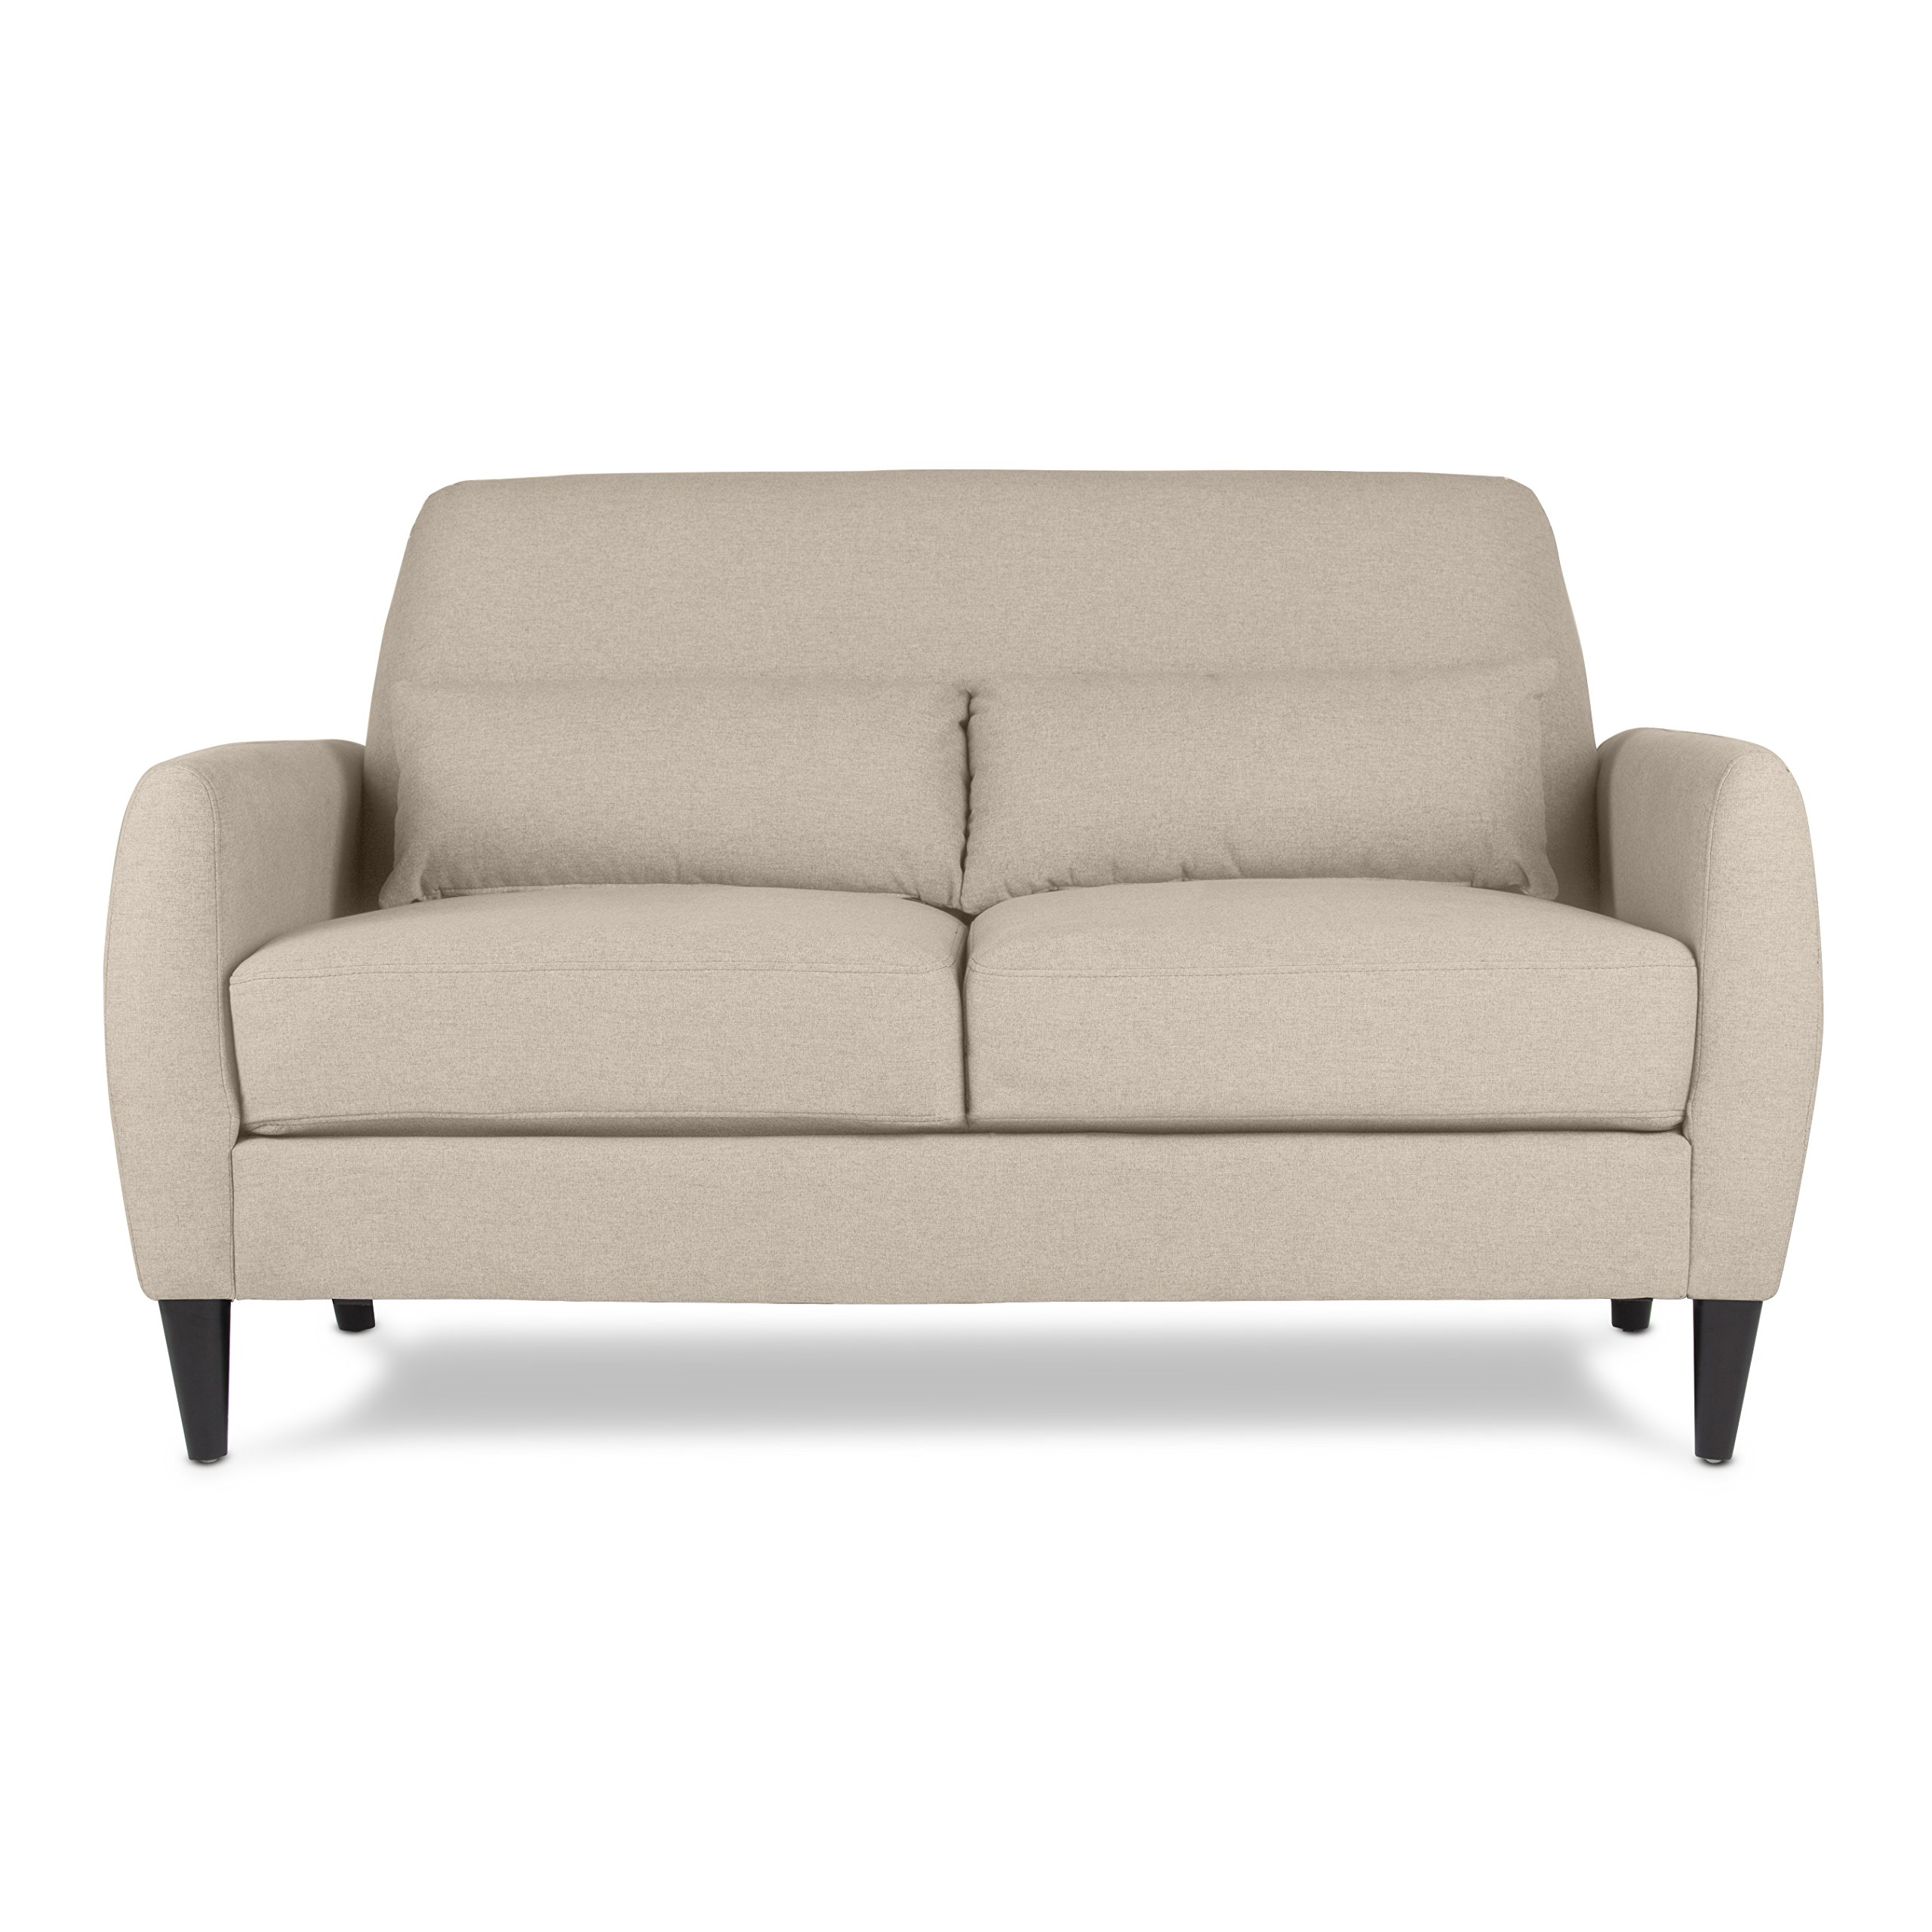 Studio Designs Home 70135 Allure Loveseat, Devon Sand